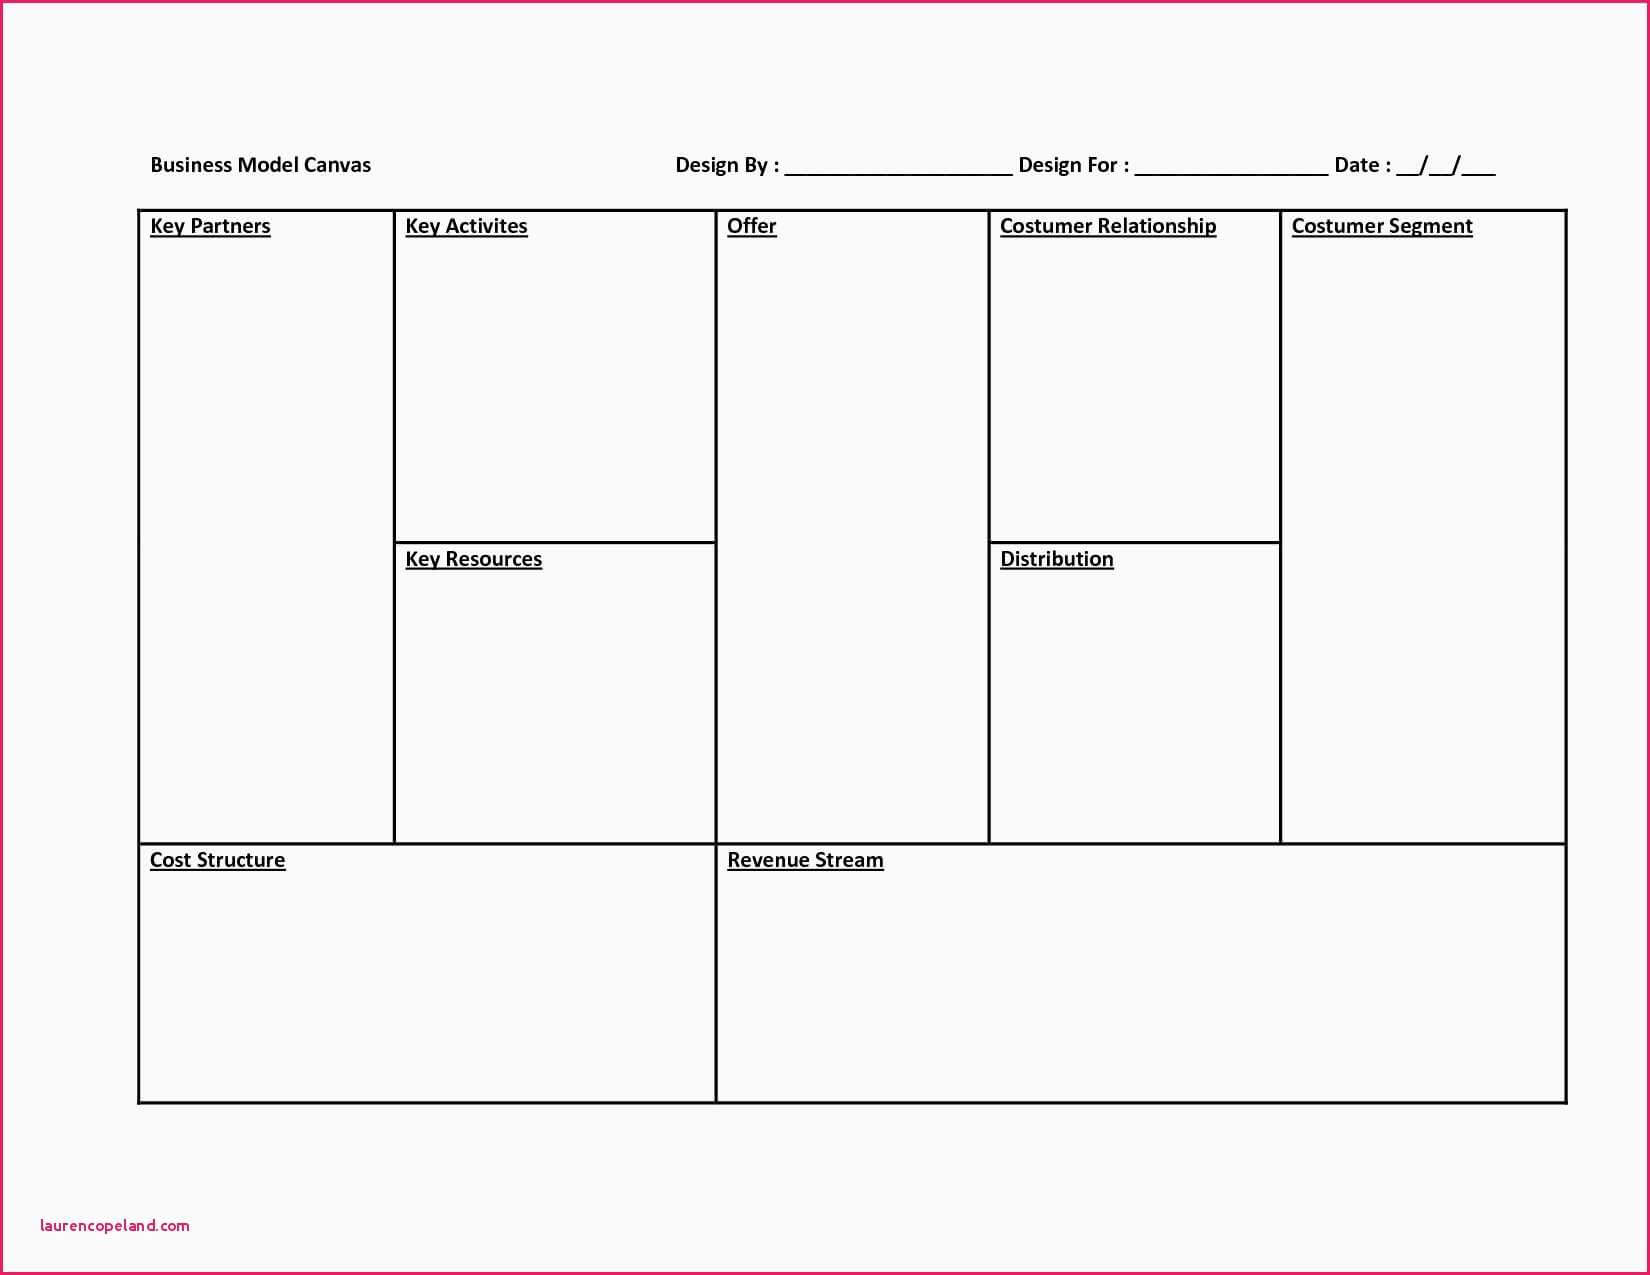 003 Business Model Canvas Template Word Ideas Excel Oder Pertaining To Business Model Canvas Template Word